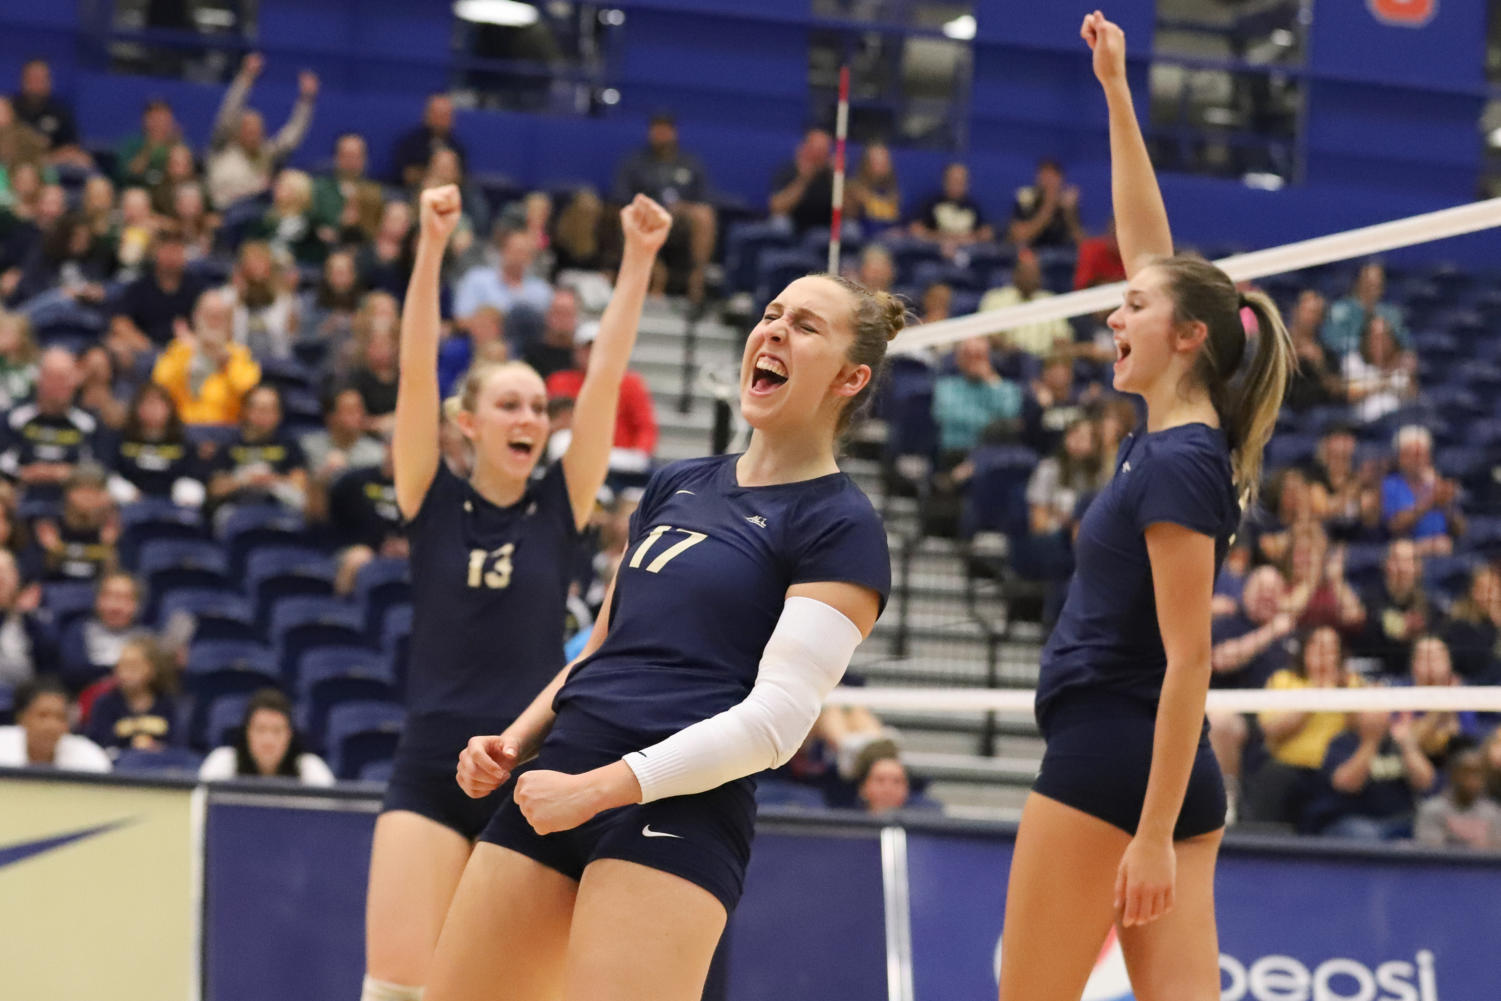 Junior Nika Markovic (17) celebrates at Pitt's 3-1 victory over Florida State Sunday afternoon. (Photo by Kaycee Orwig | Staff Photographer)